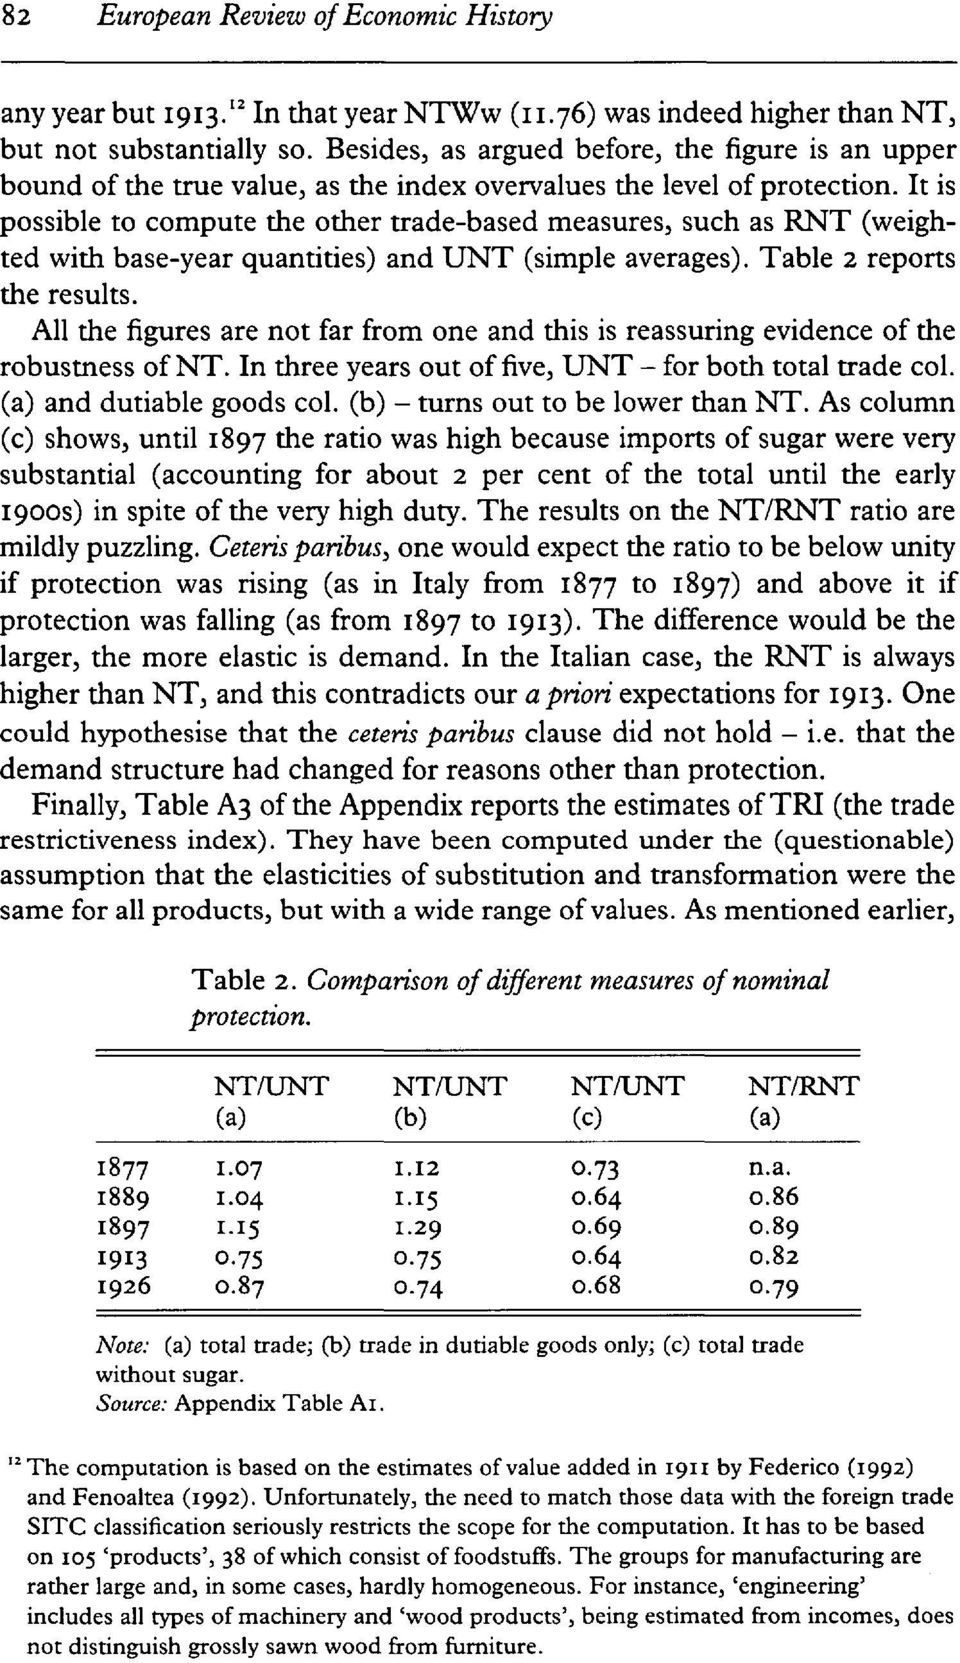 It is possible to compute the other trade-based measures, such as RNT (weighted with base-year quantities) and UNT (simple averages). Table 2 reports the results.